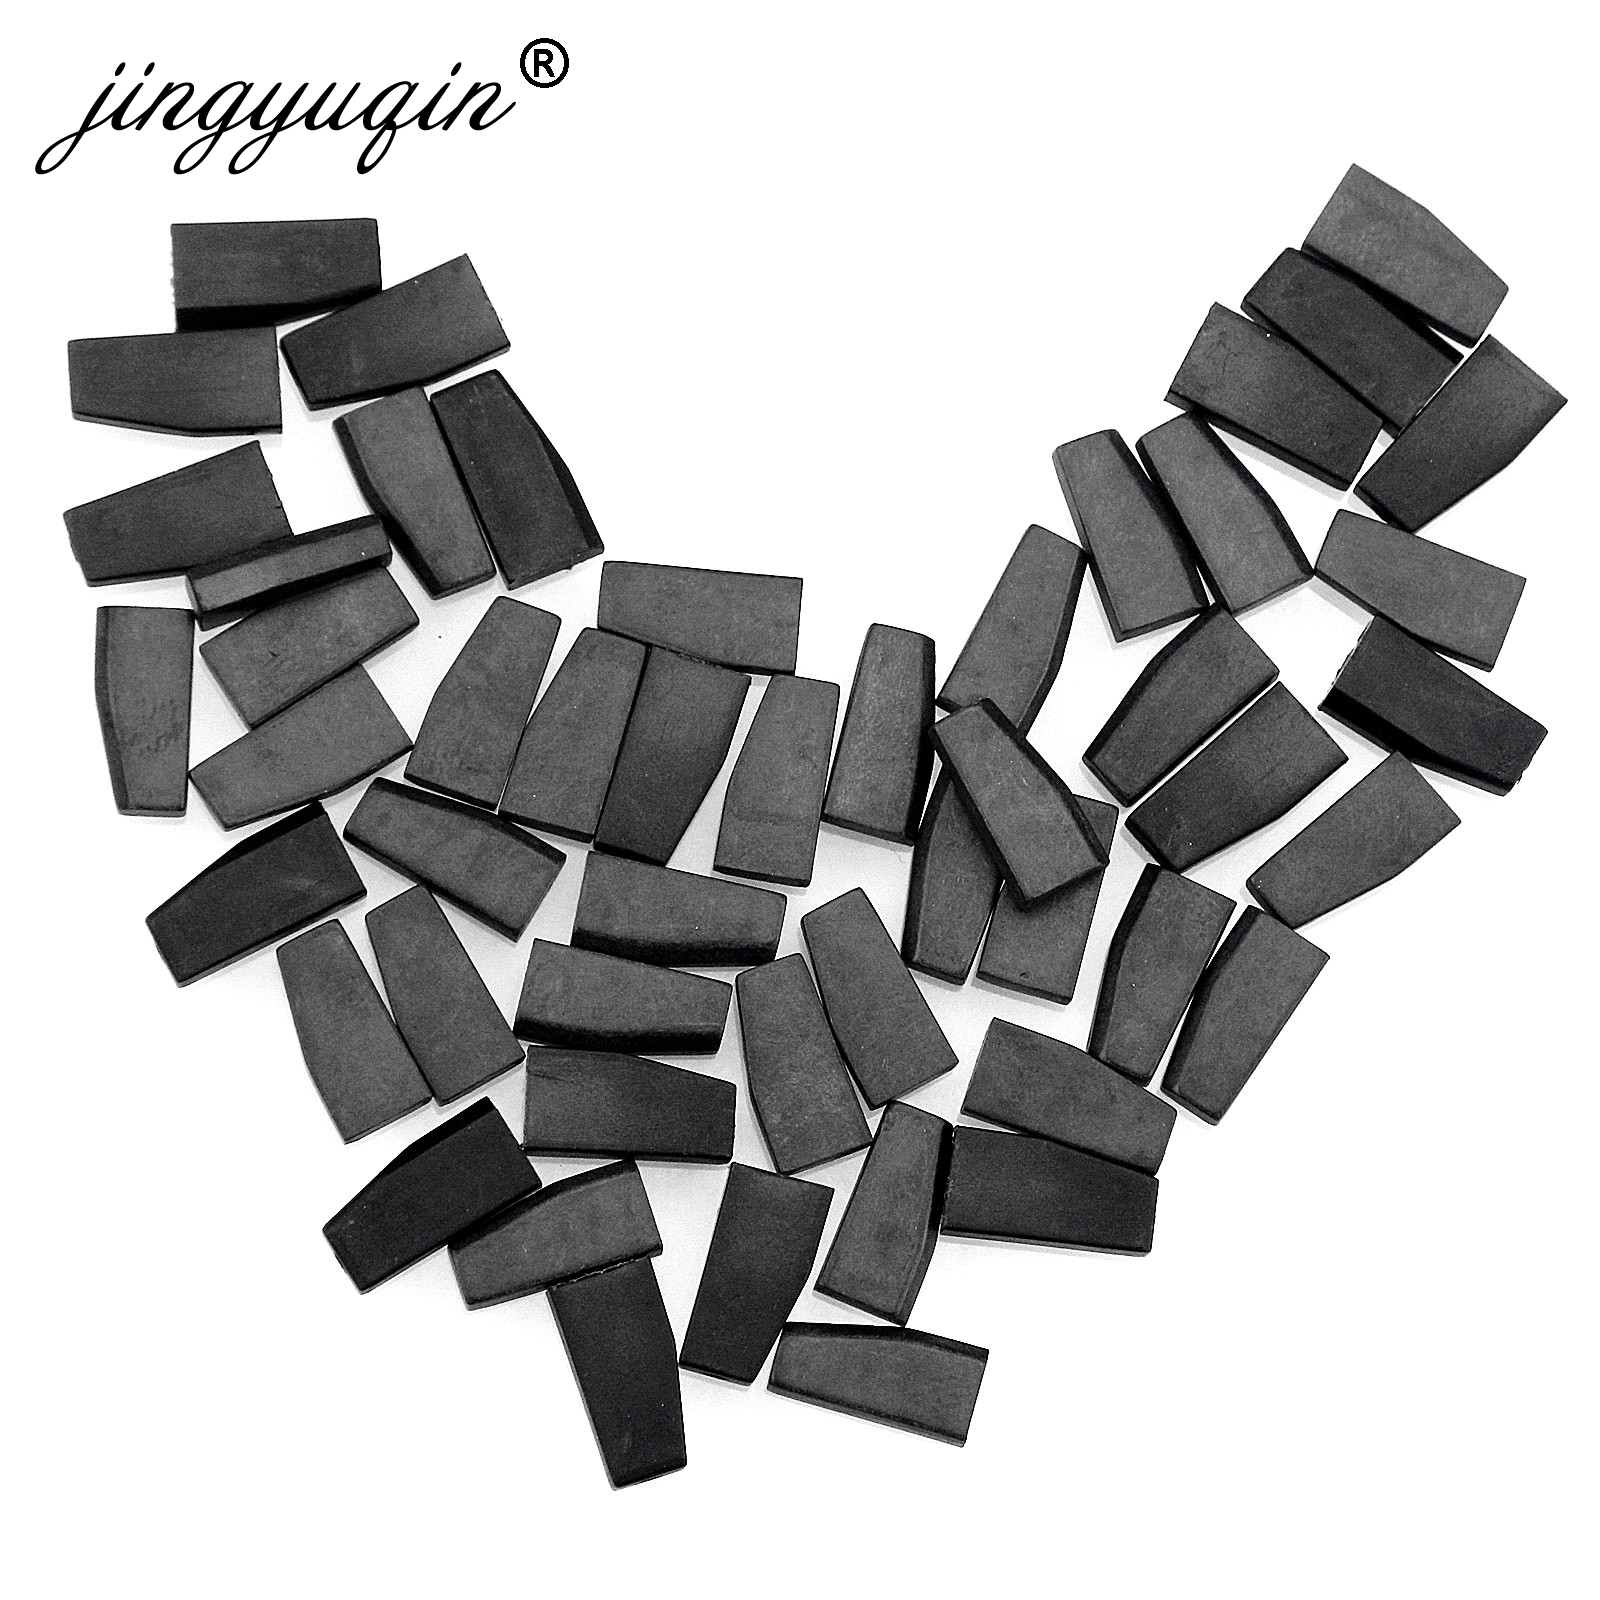 jingyuqin 15pcs lot Auto Carbon Transponder Chip For Ford Mazda Lincoln 4D63 40Bit 80Bit 4D ID63